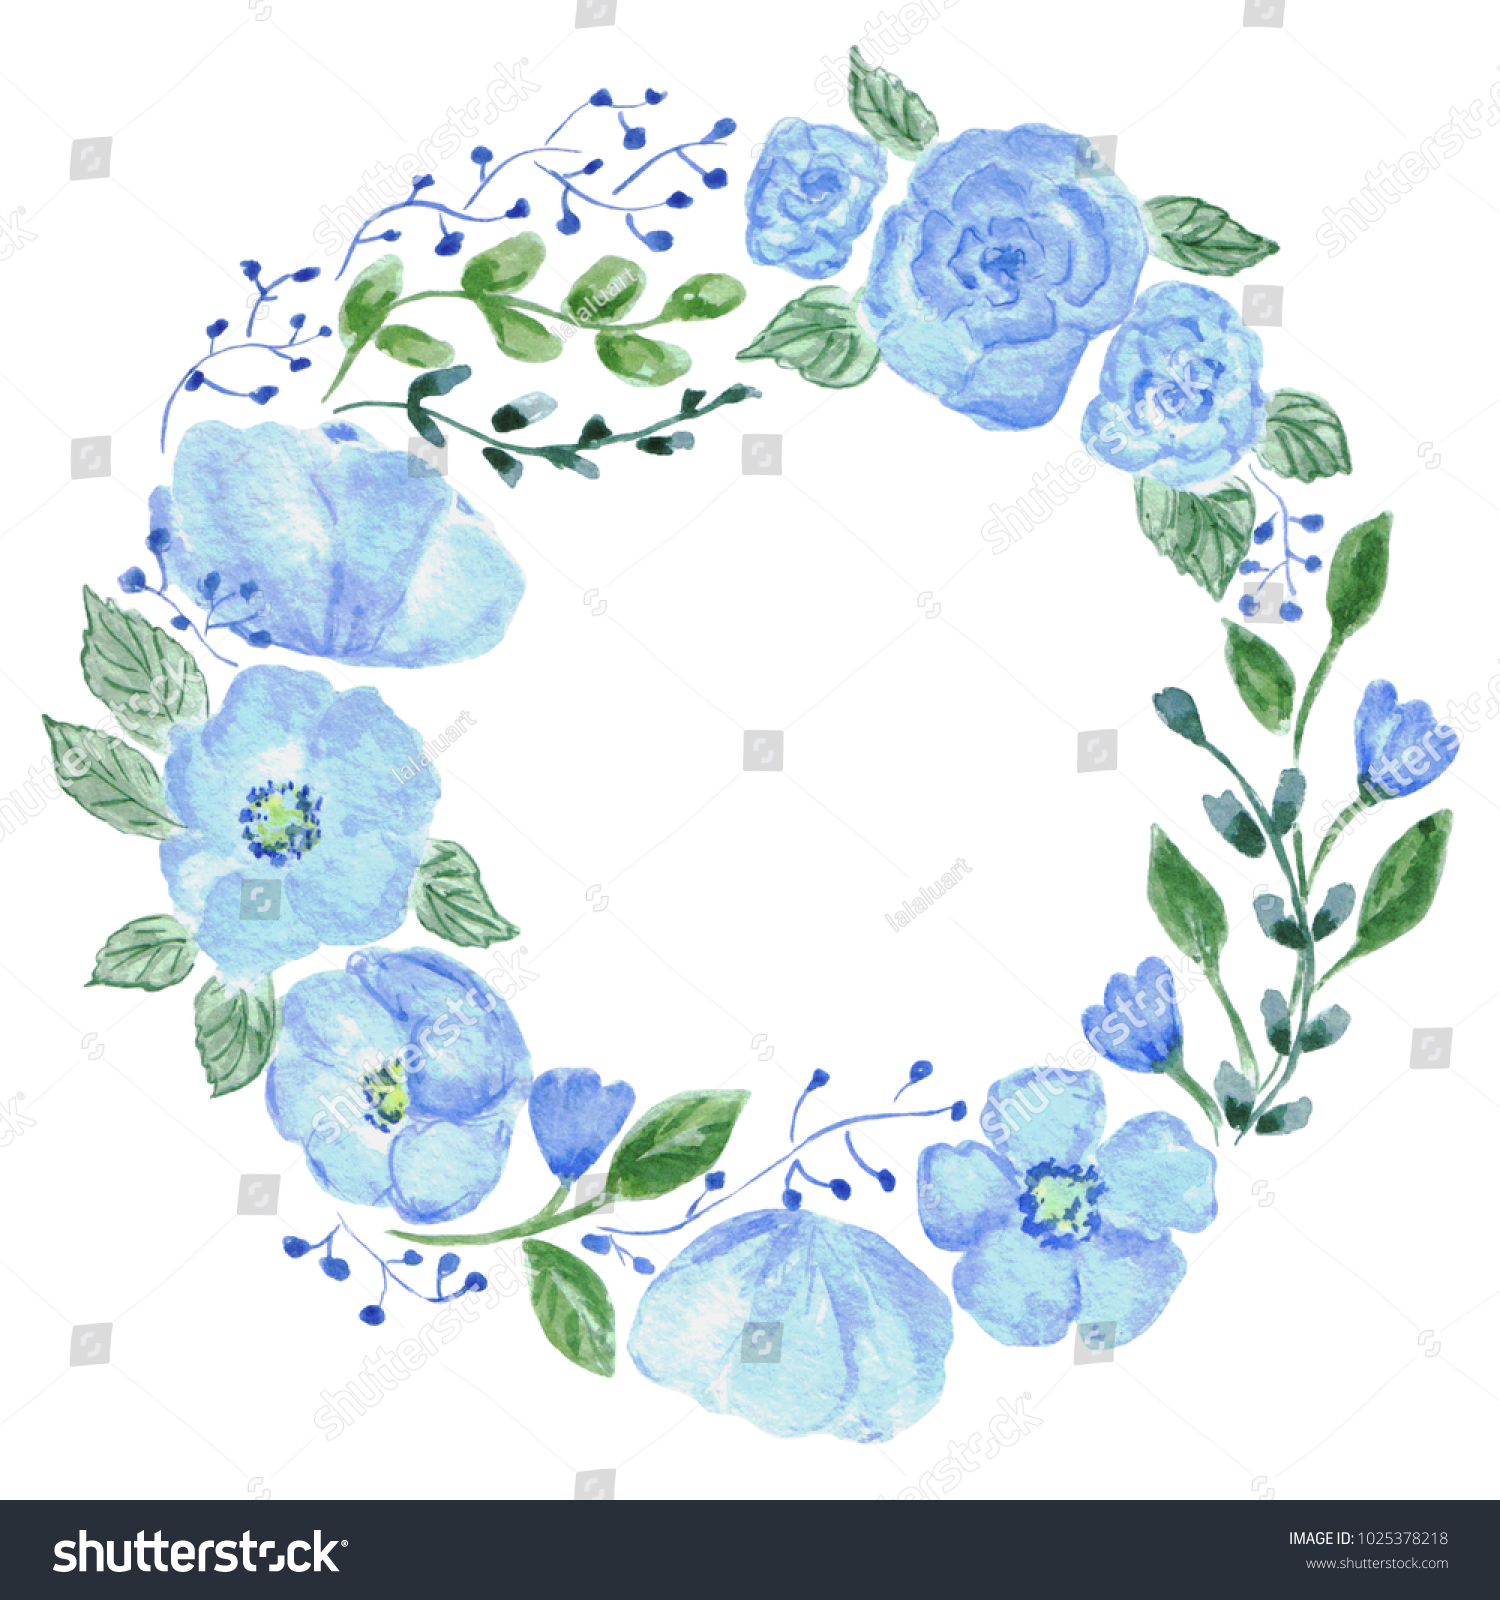 Floral wreath blue flowers green leaves stock illustration floral wreath blue flowers and green leaves watercolor illustration invitation card design izmirmasajfo